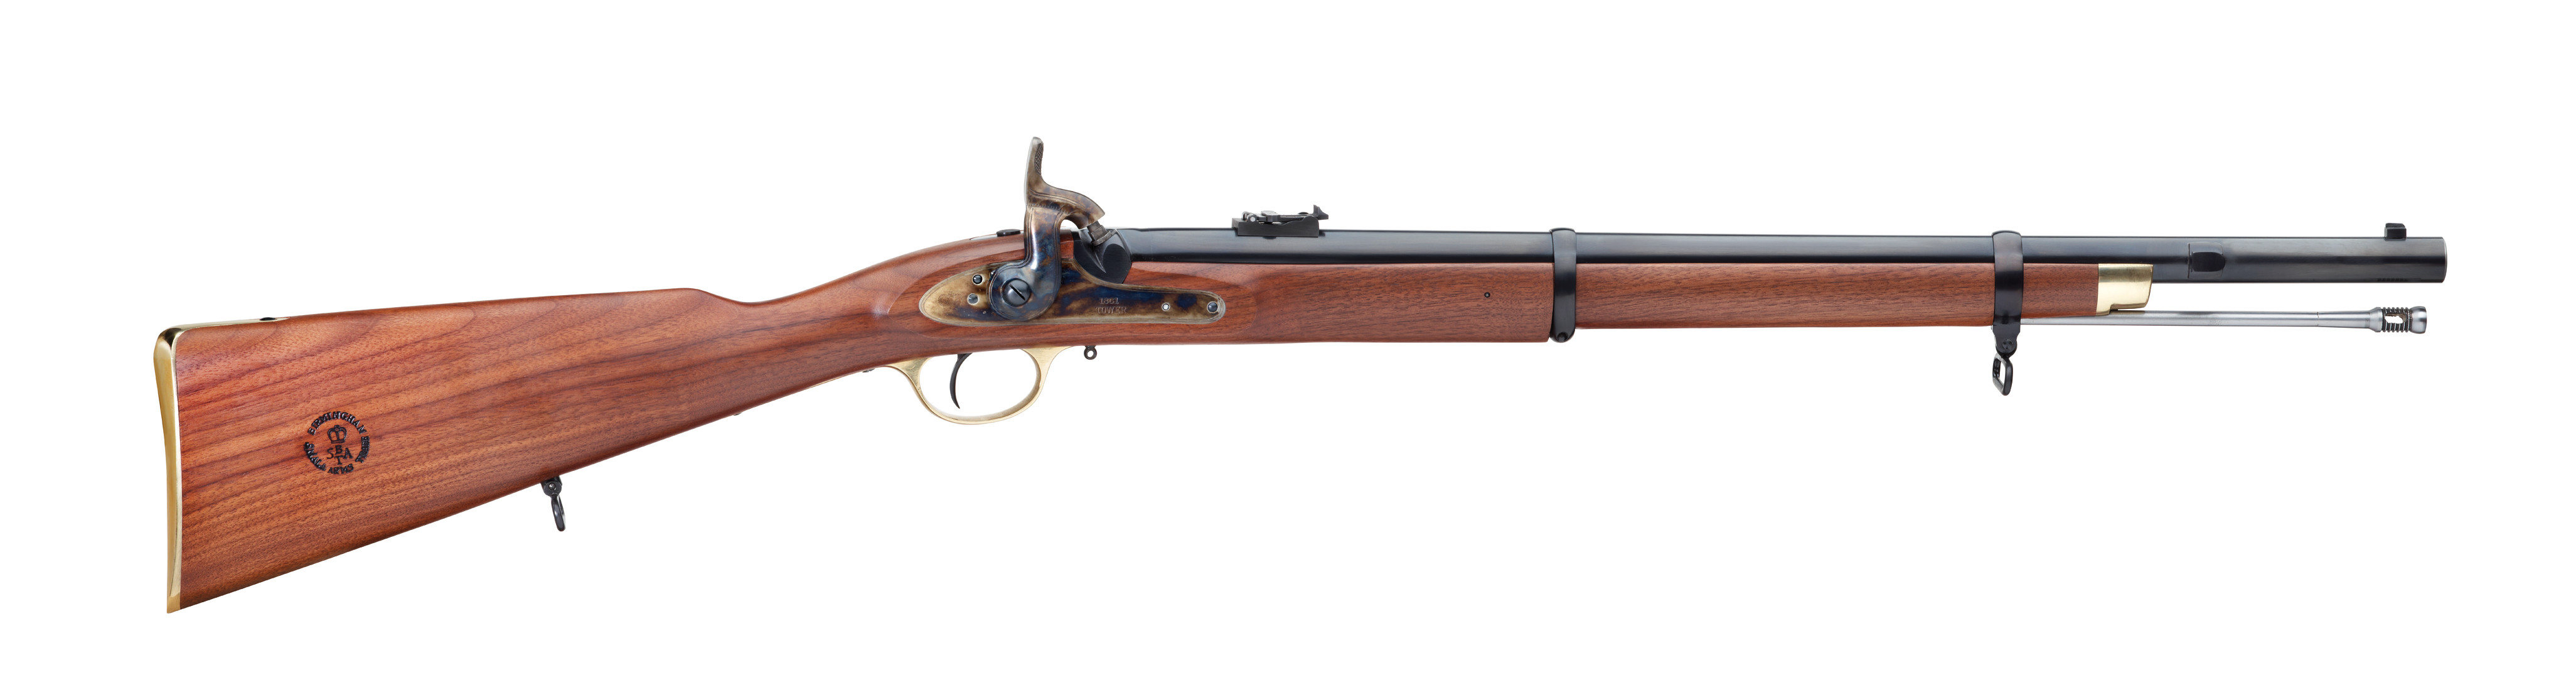 Pedersoli 1861 Enfield Musketoon Short Percussion Rifle - .58 Caliber - 24